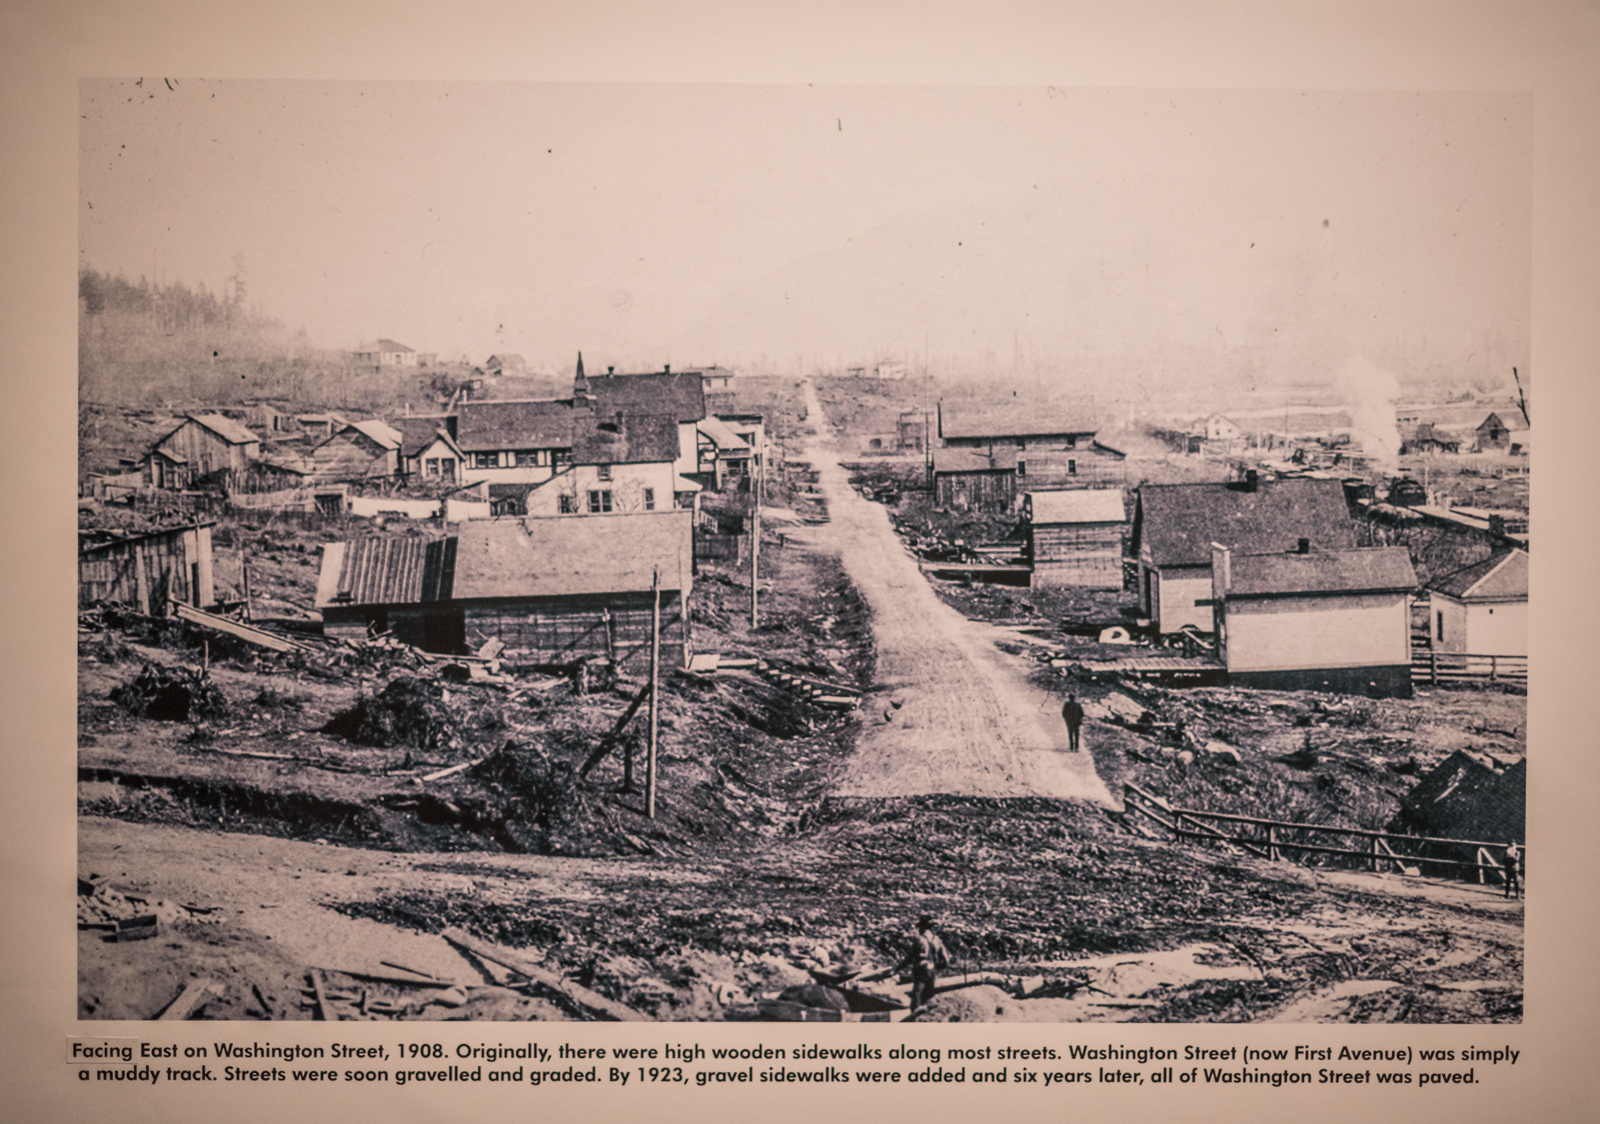 An early photograph of Mission